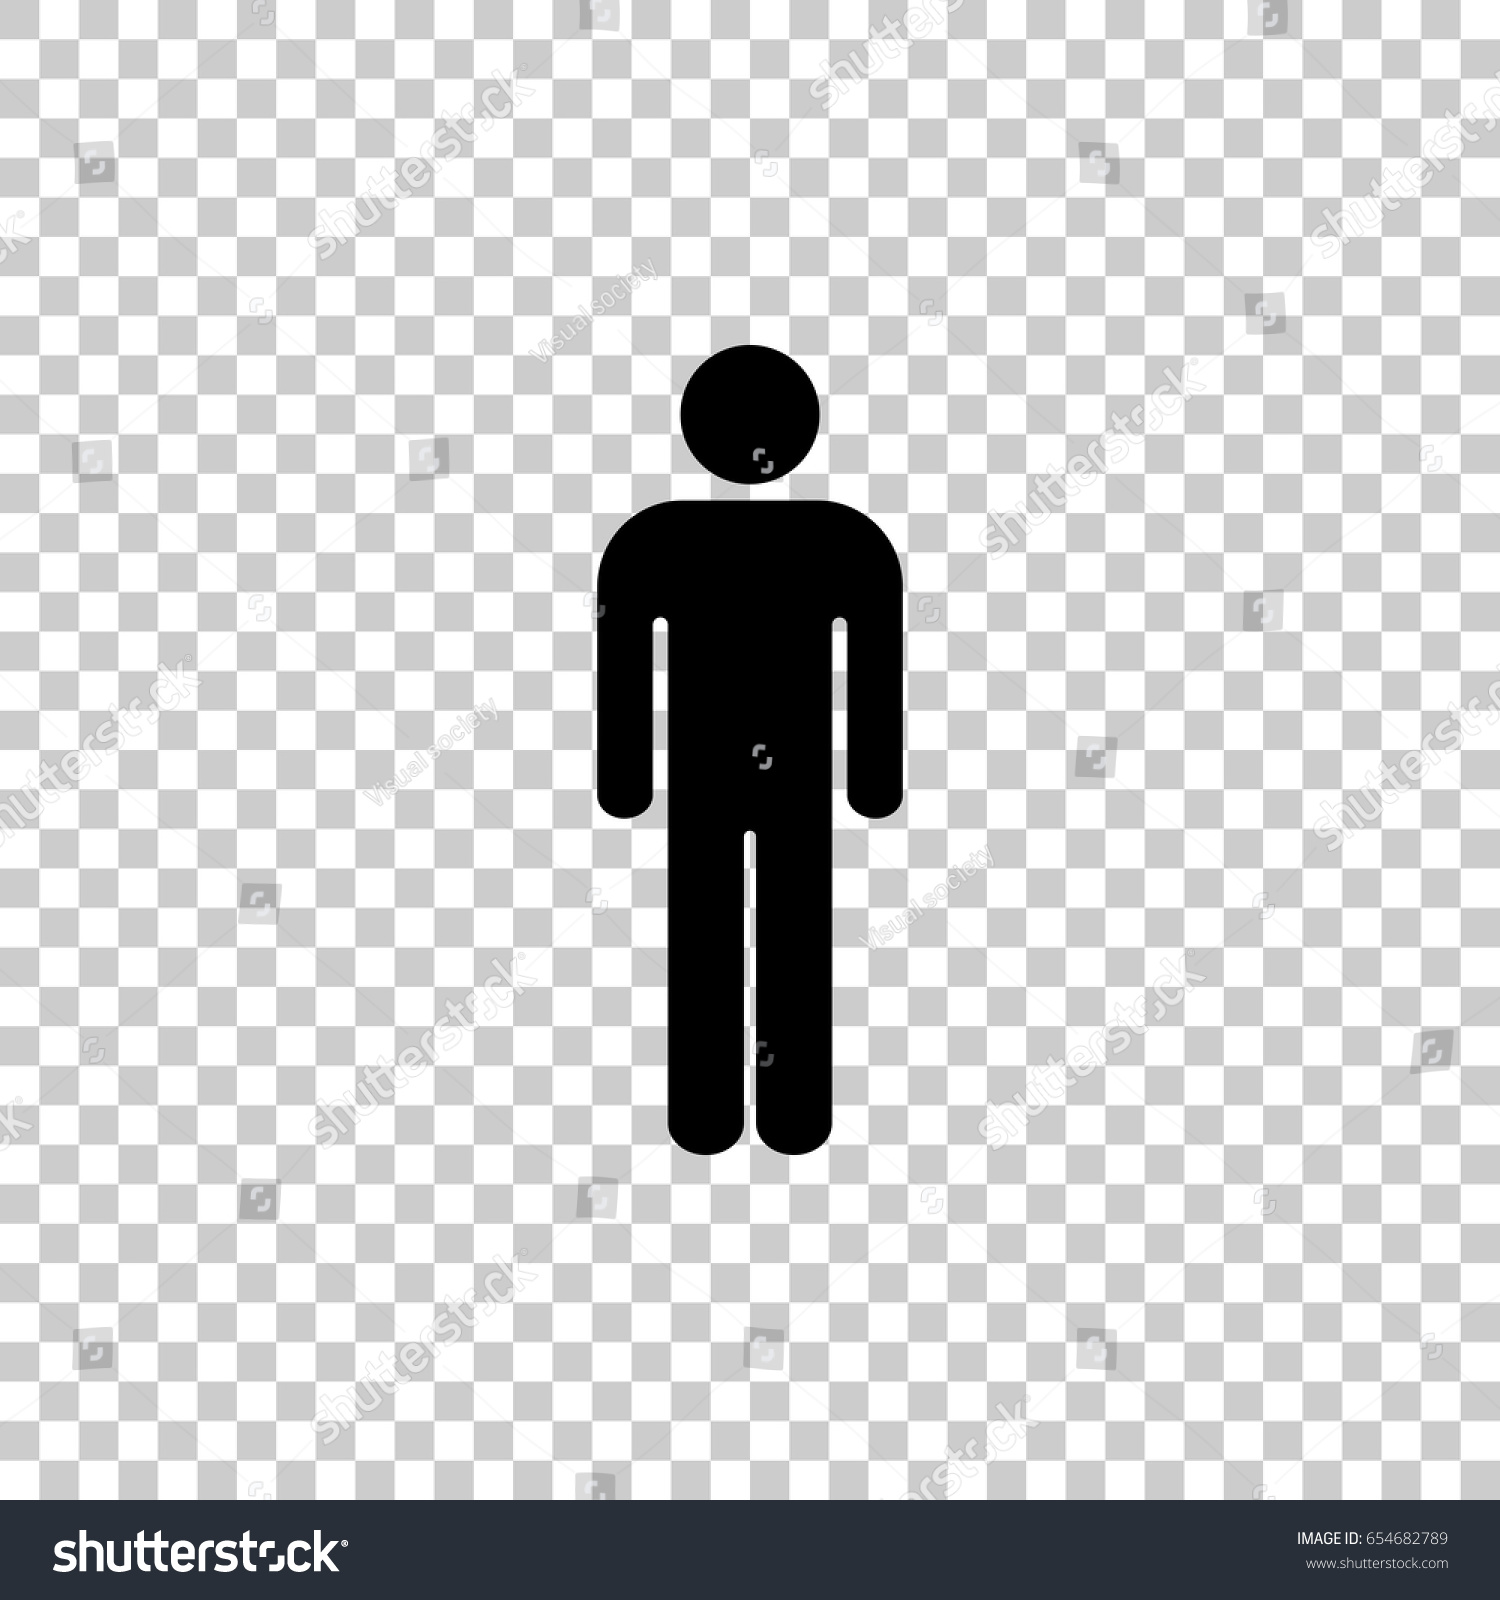 Person Icon Transparent Background #2400 #252345.